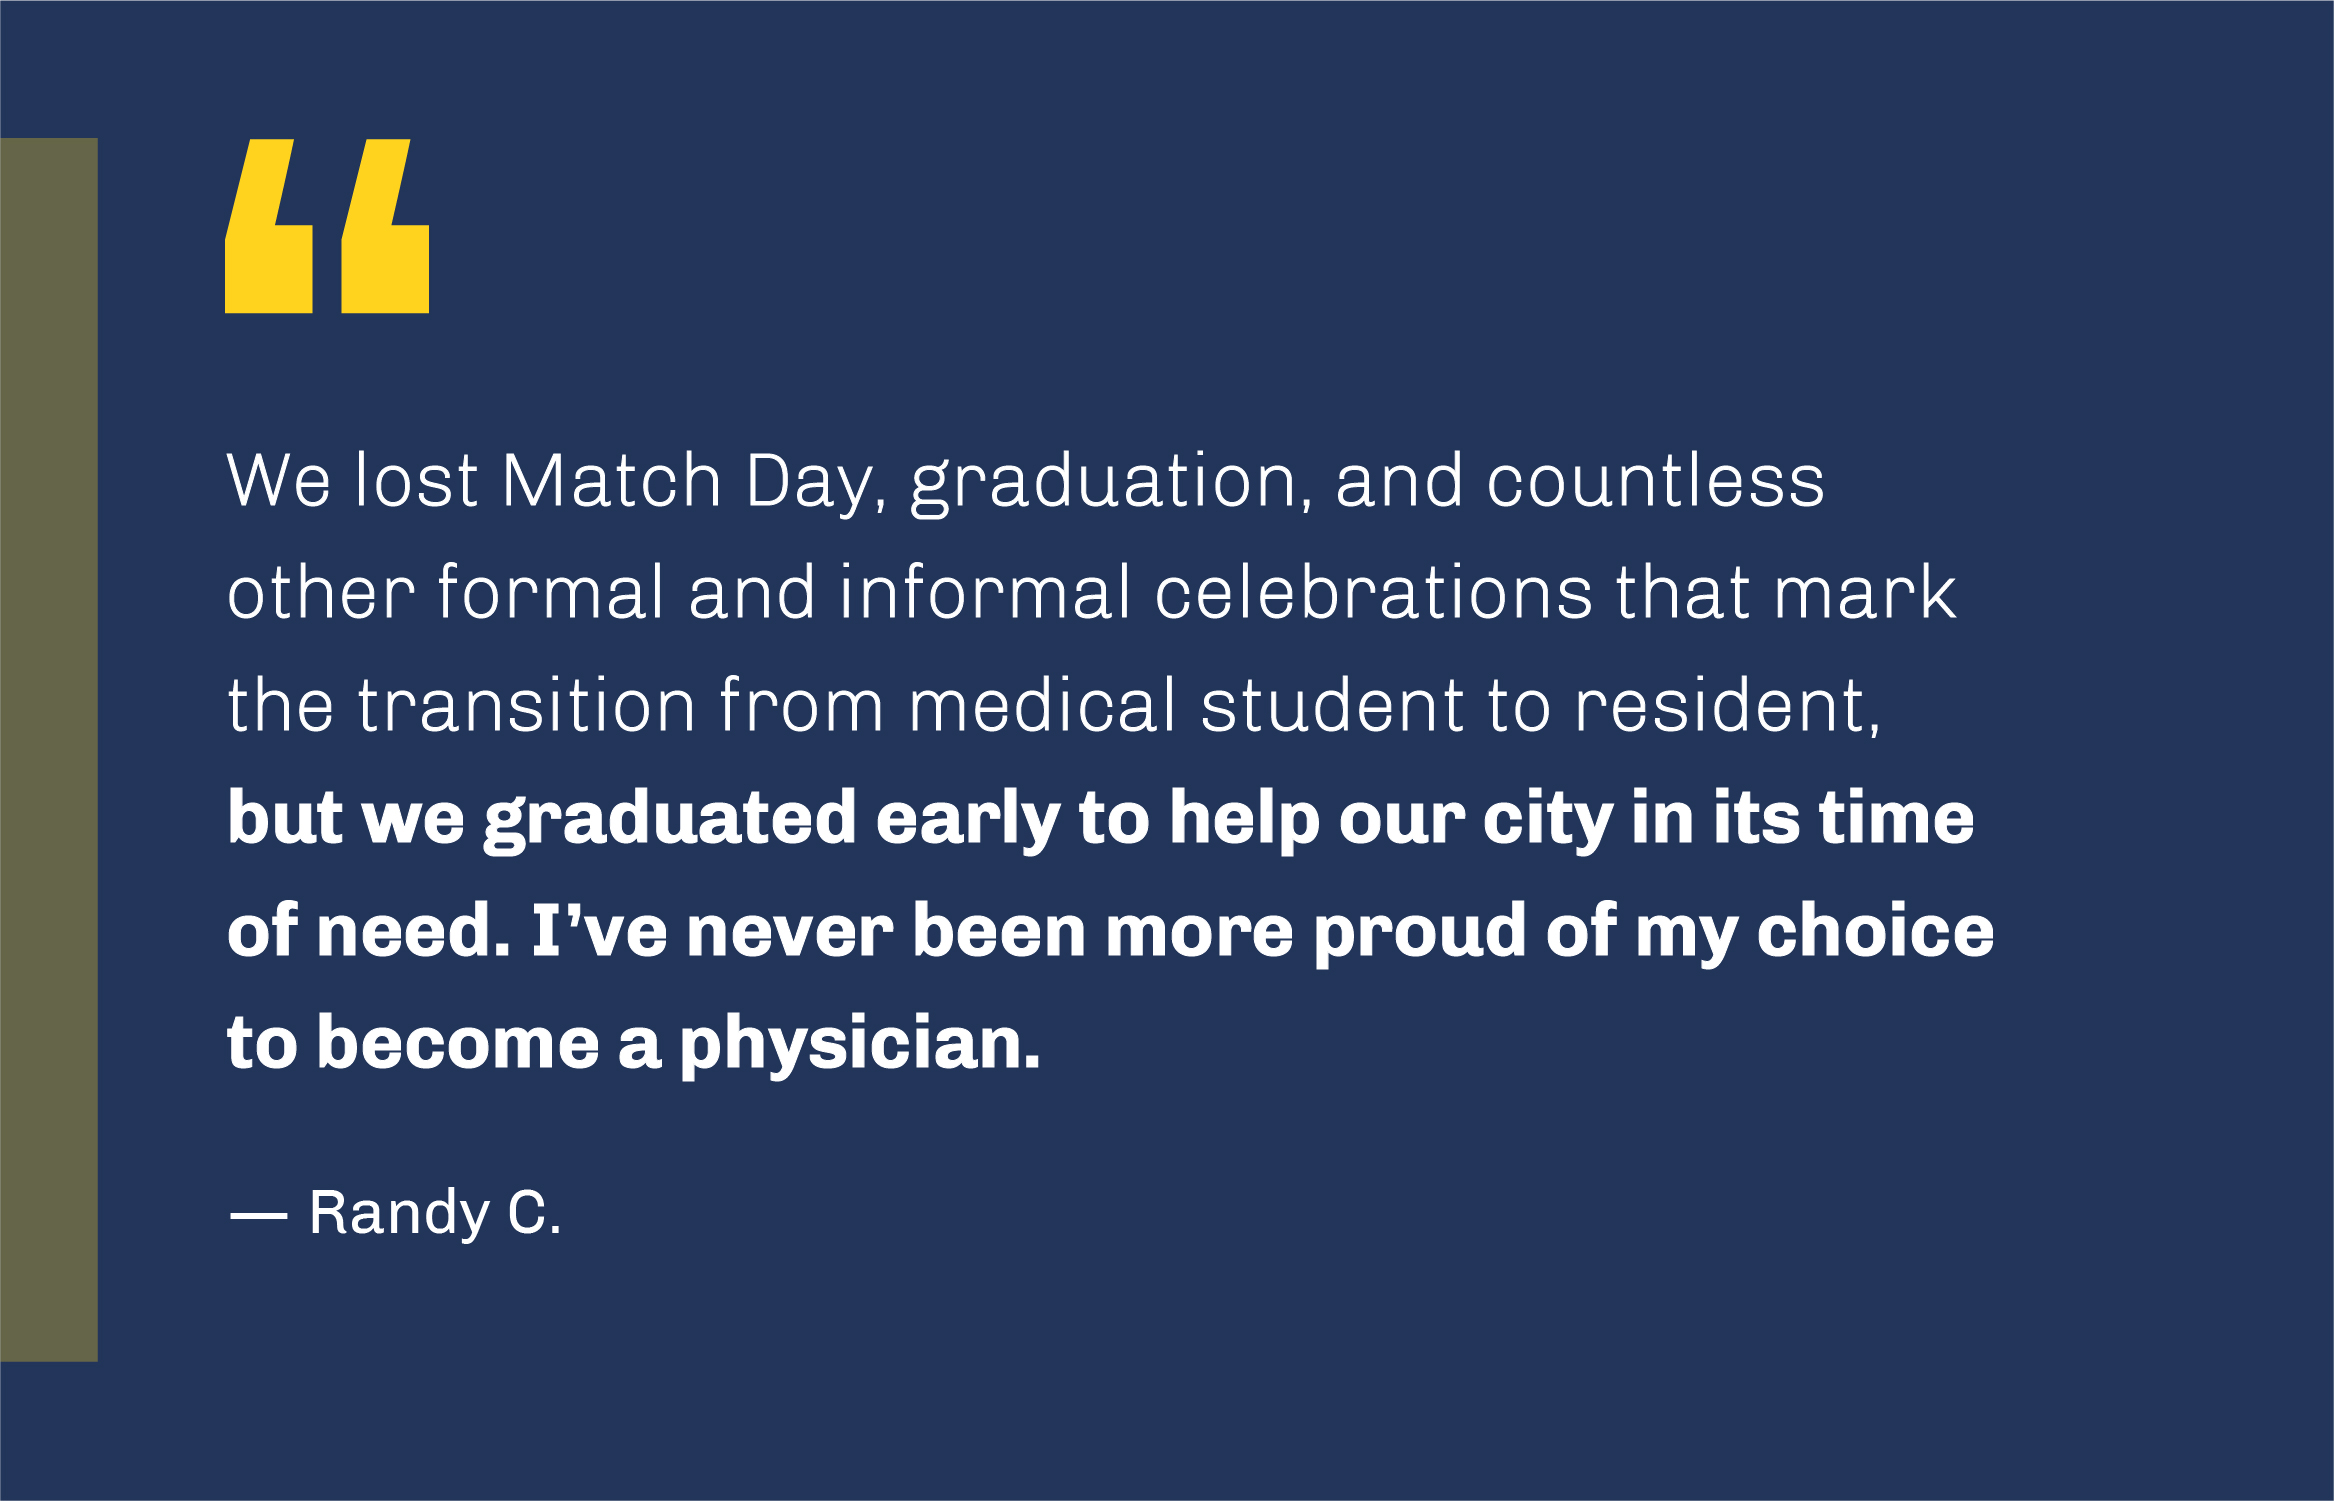 'We lost Match Day, graduation, and countless other formal and informal celebrations that mark the transition from medical student to resident, but we graduated early to help our city in its time of need. I've never been more proud of my choice to become a physician.' -- Randy C.